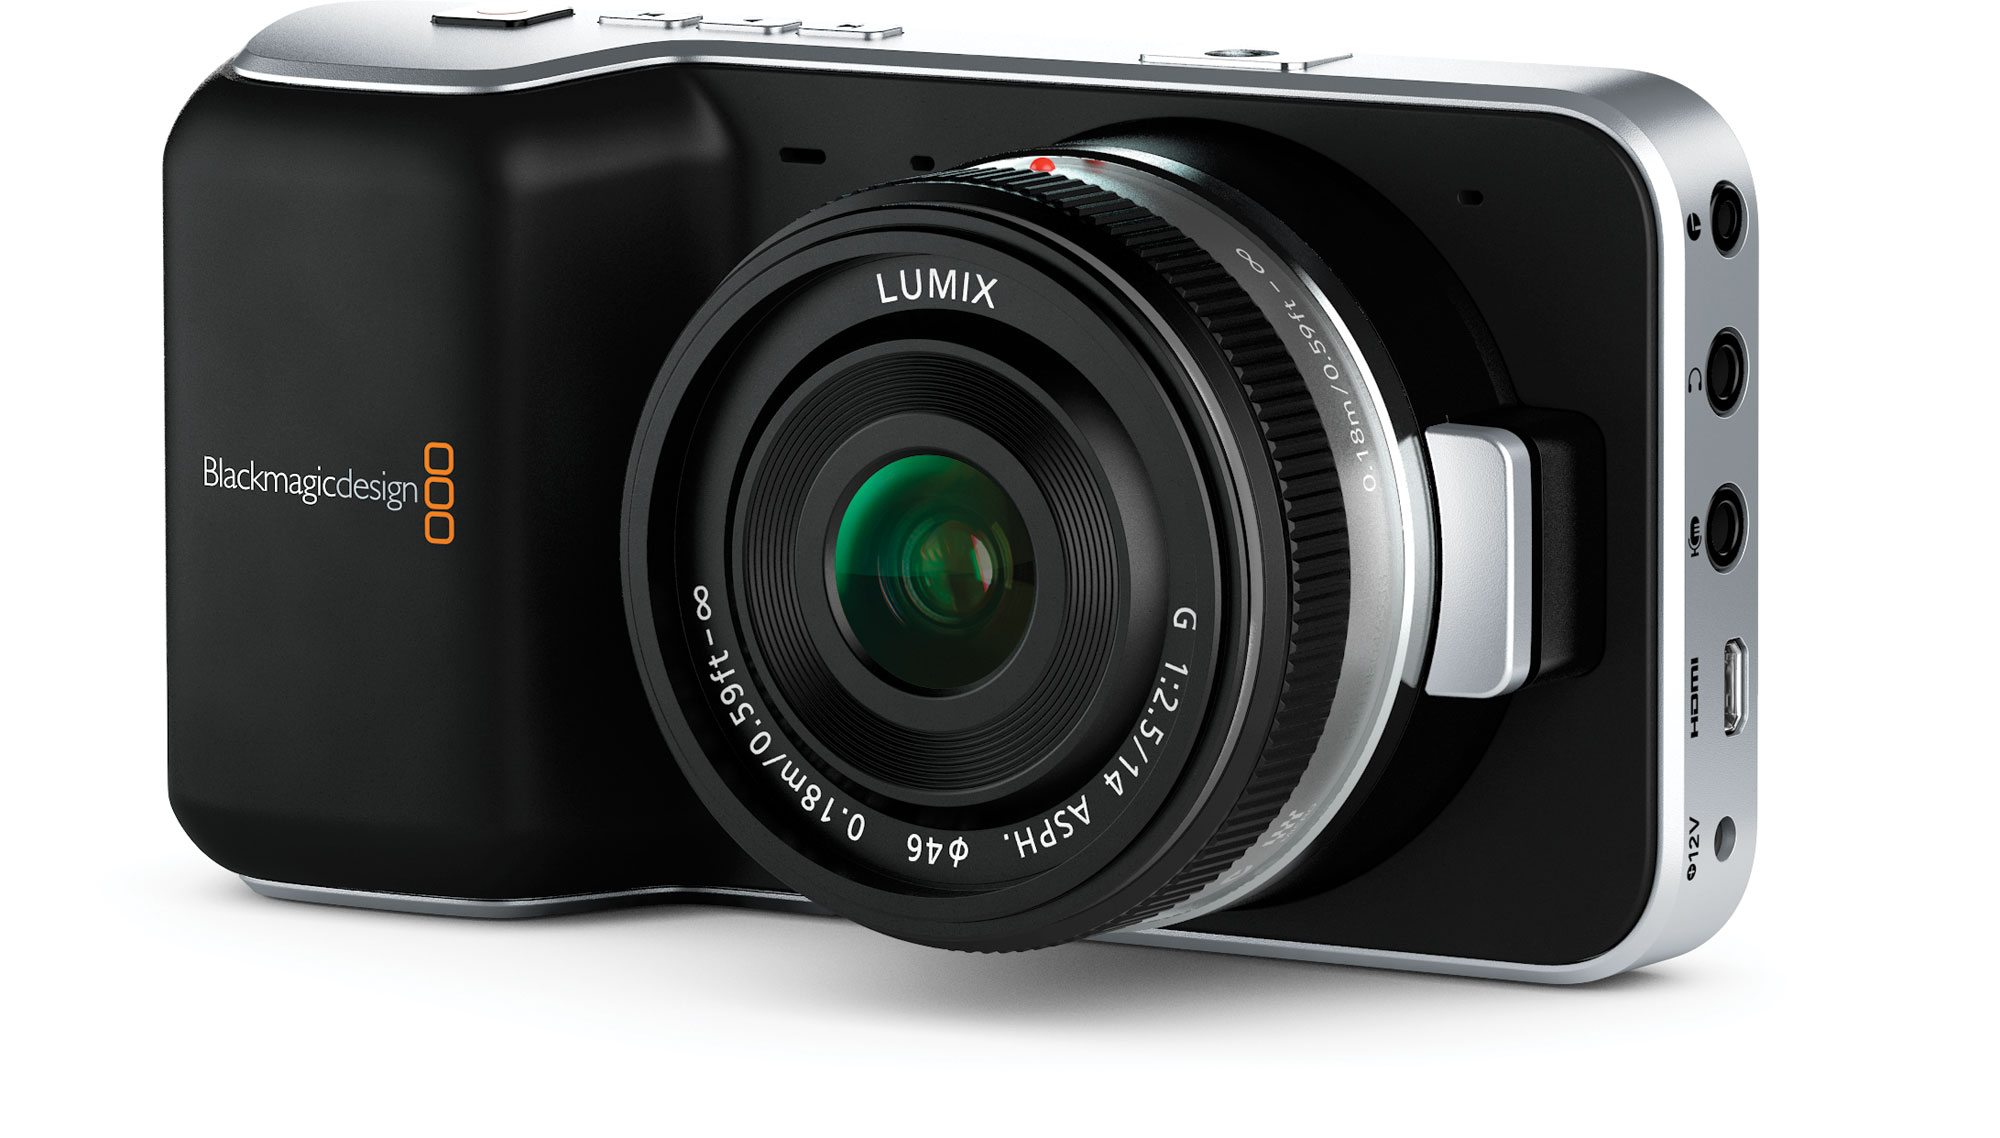 The Blackmagic Pocket Cinema Camera.